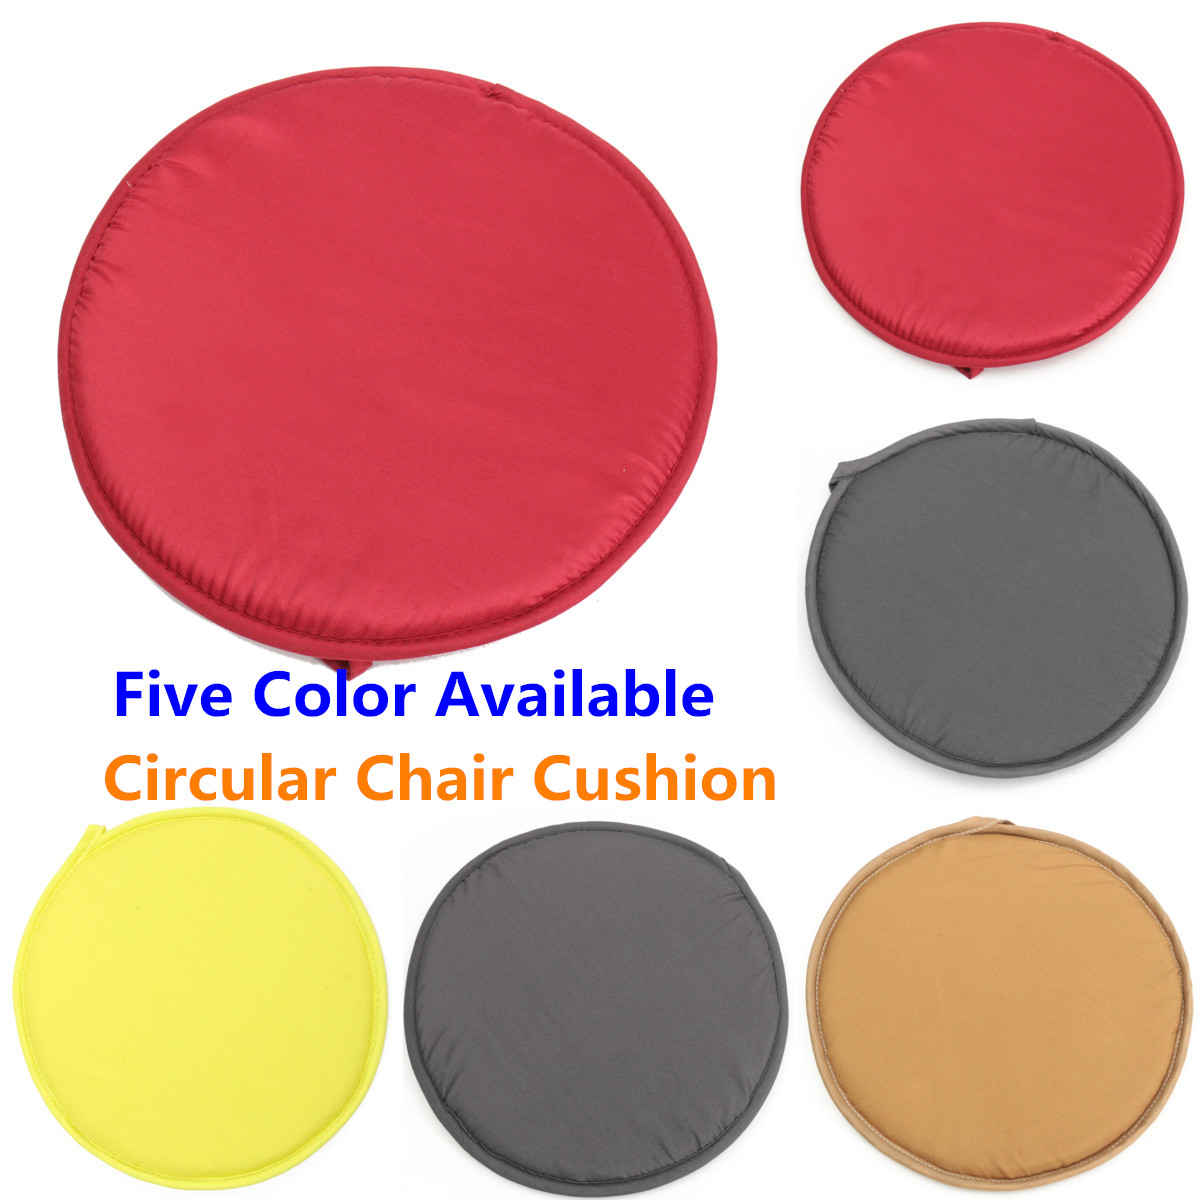 30cm Round Circular Removable Chair Cushion Seat Pads For Bistro Tie On Kitchen Dining Home